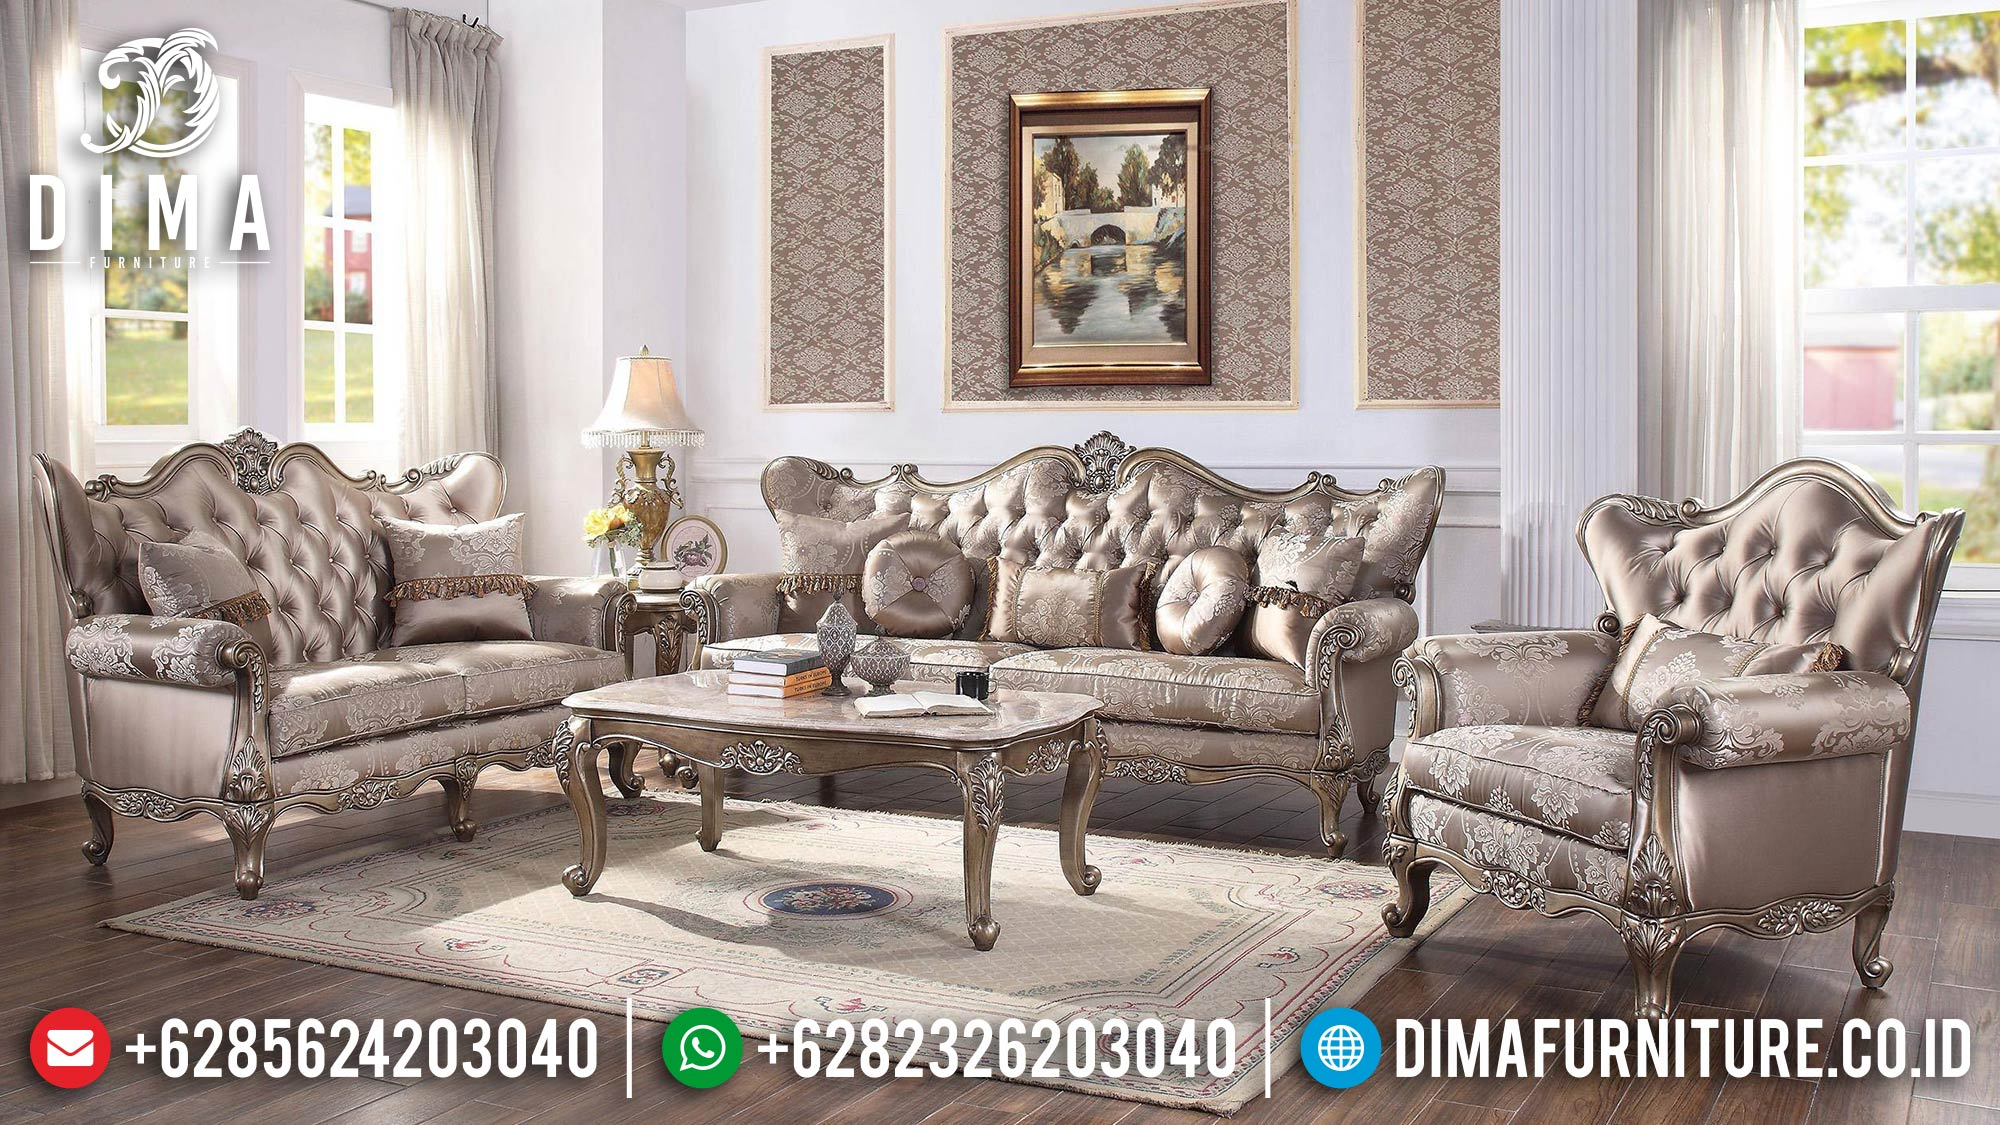 Best Seller Sofa Tamu Mewah Ukir Jepara Luxury Silver Champagne Color ST-1283